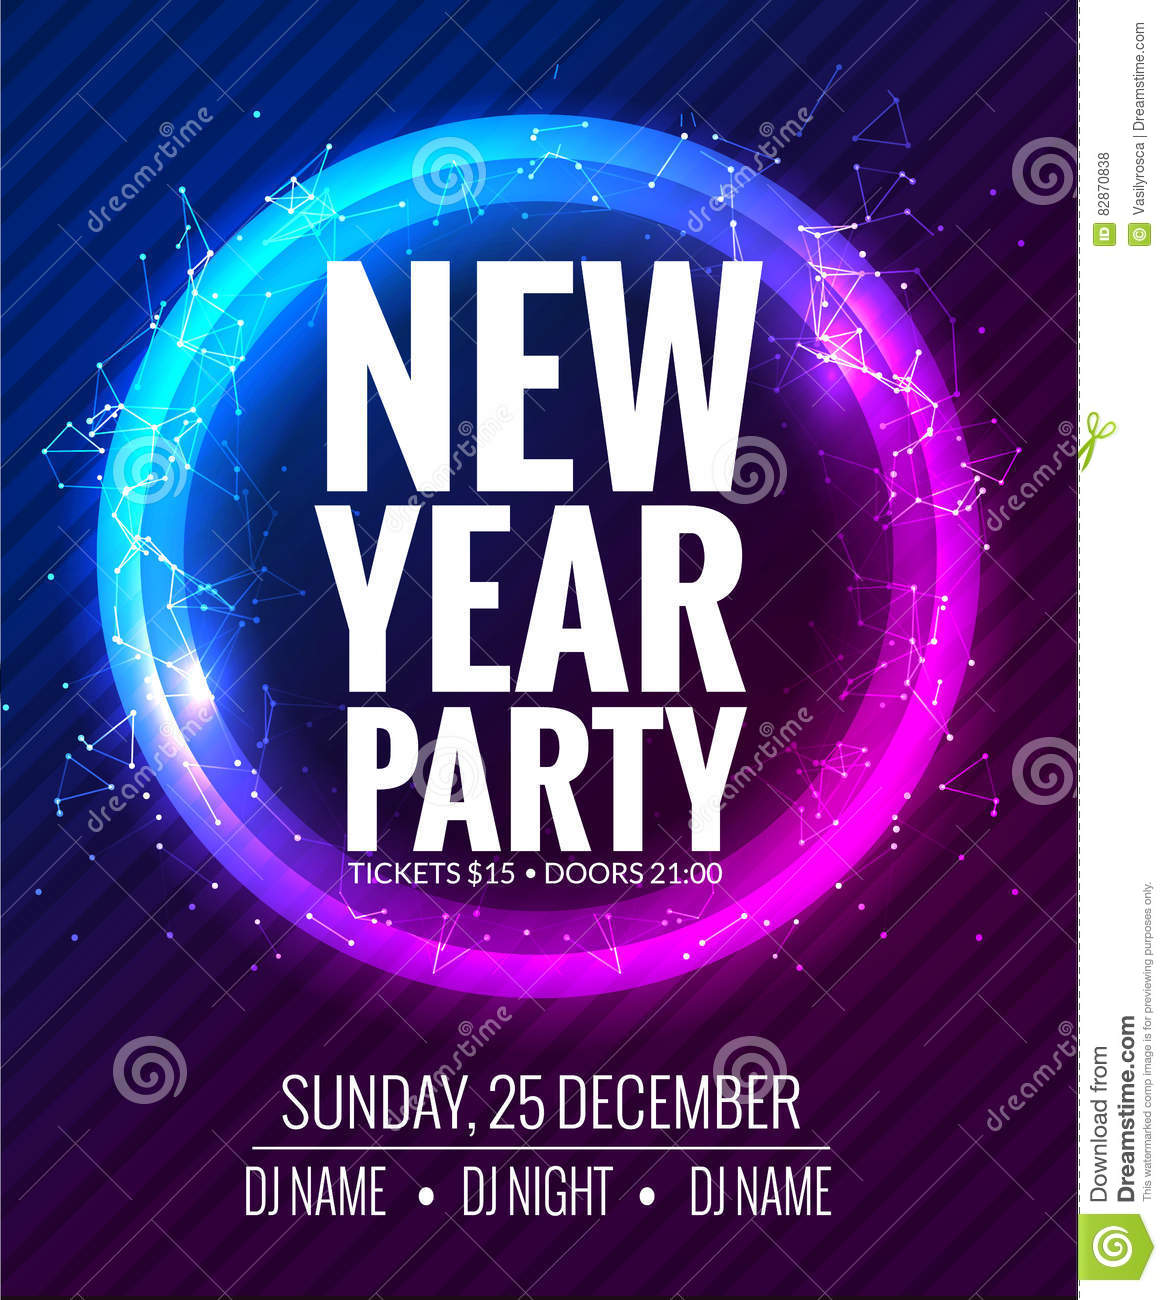 download new year party and christmas party poster template design disco night banner flyer